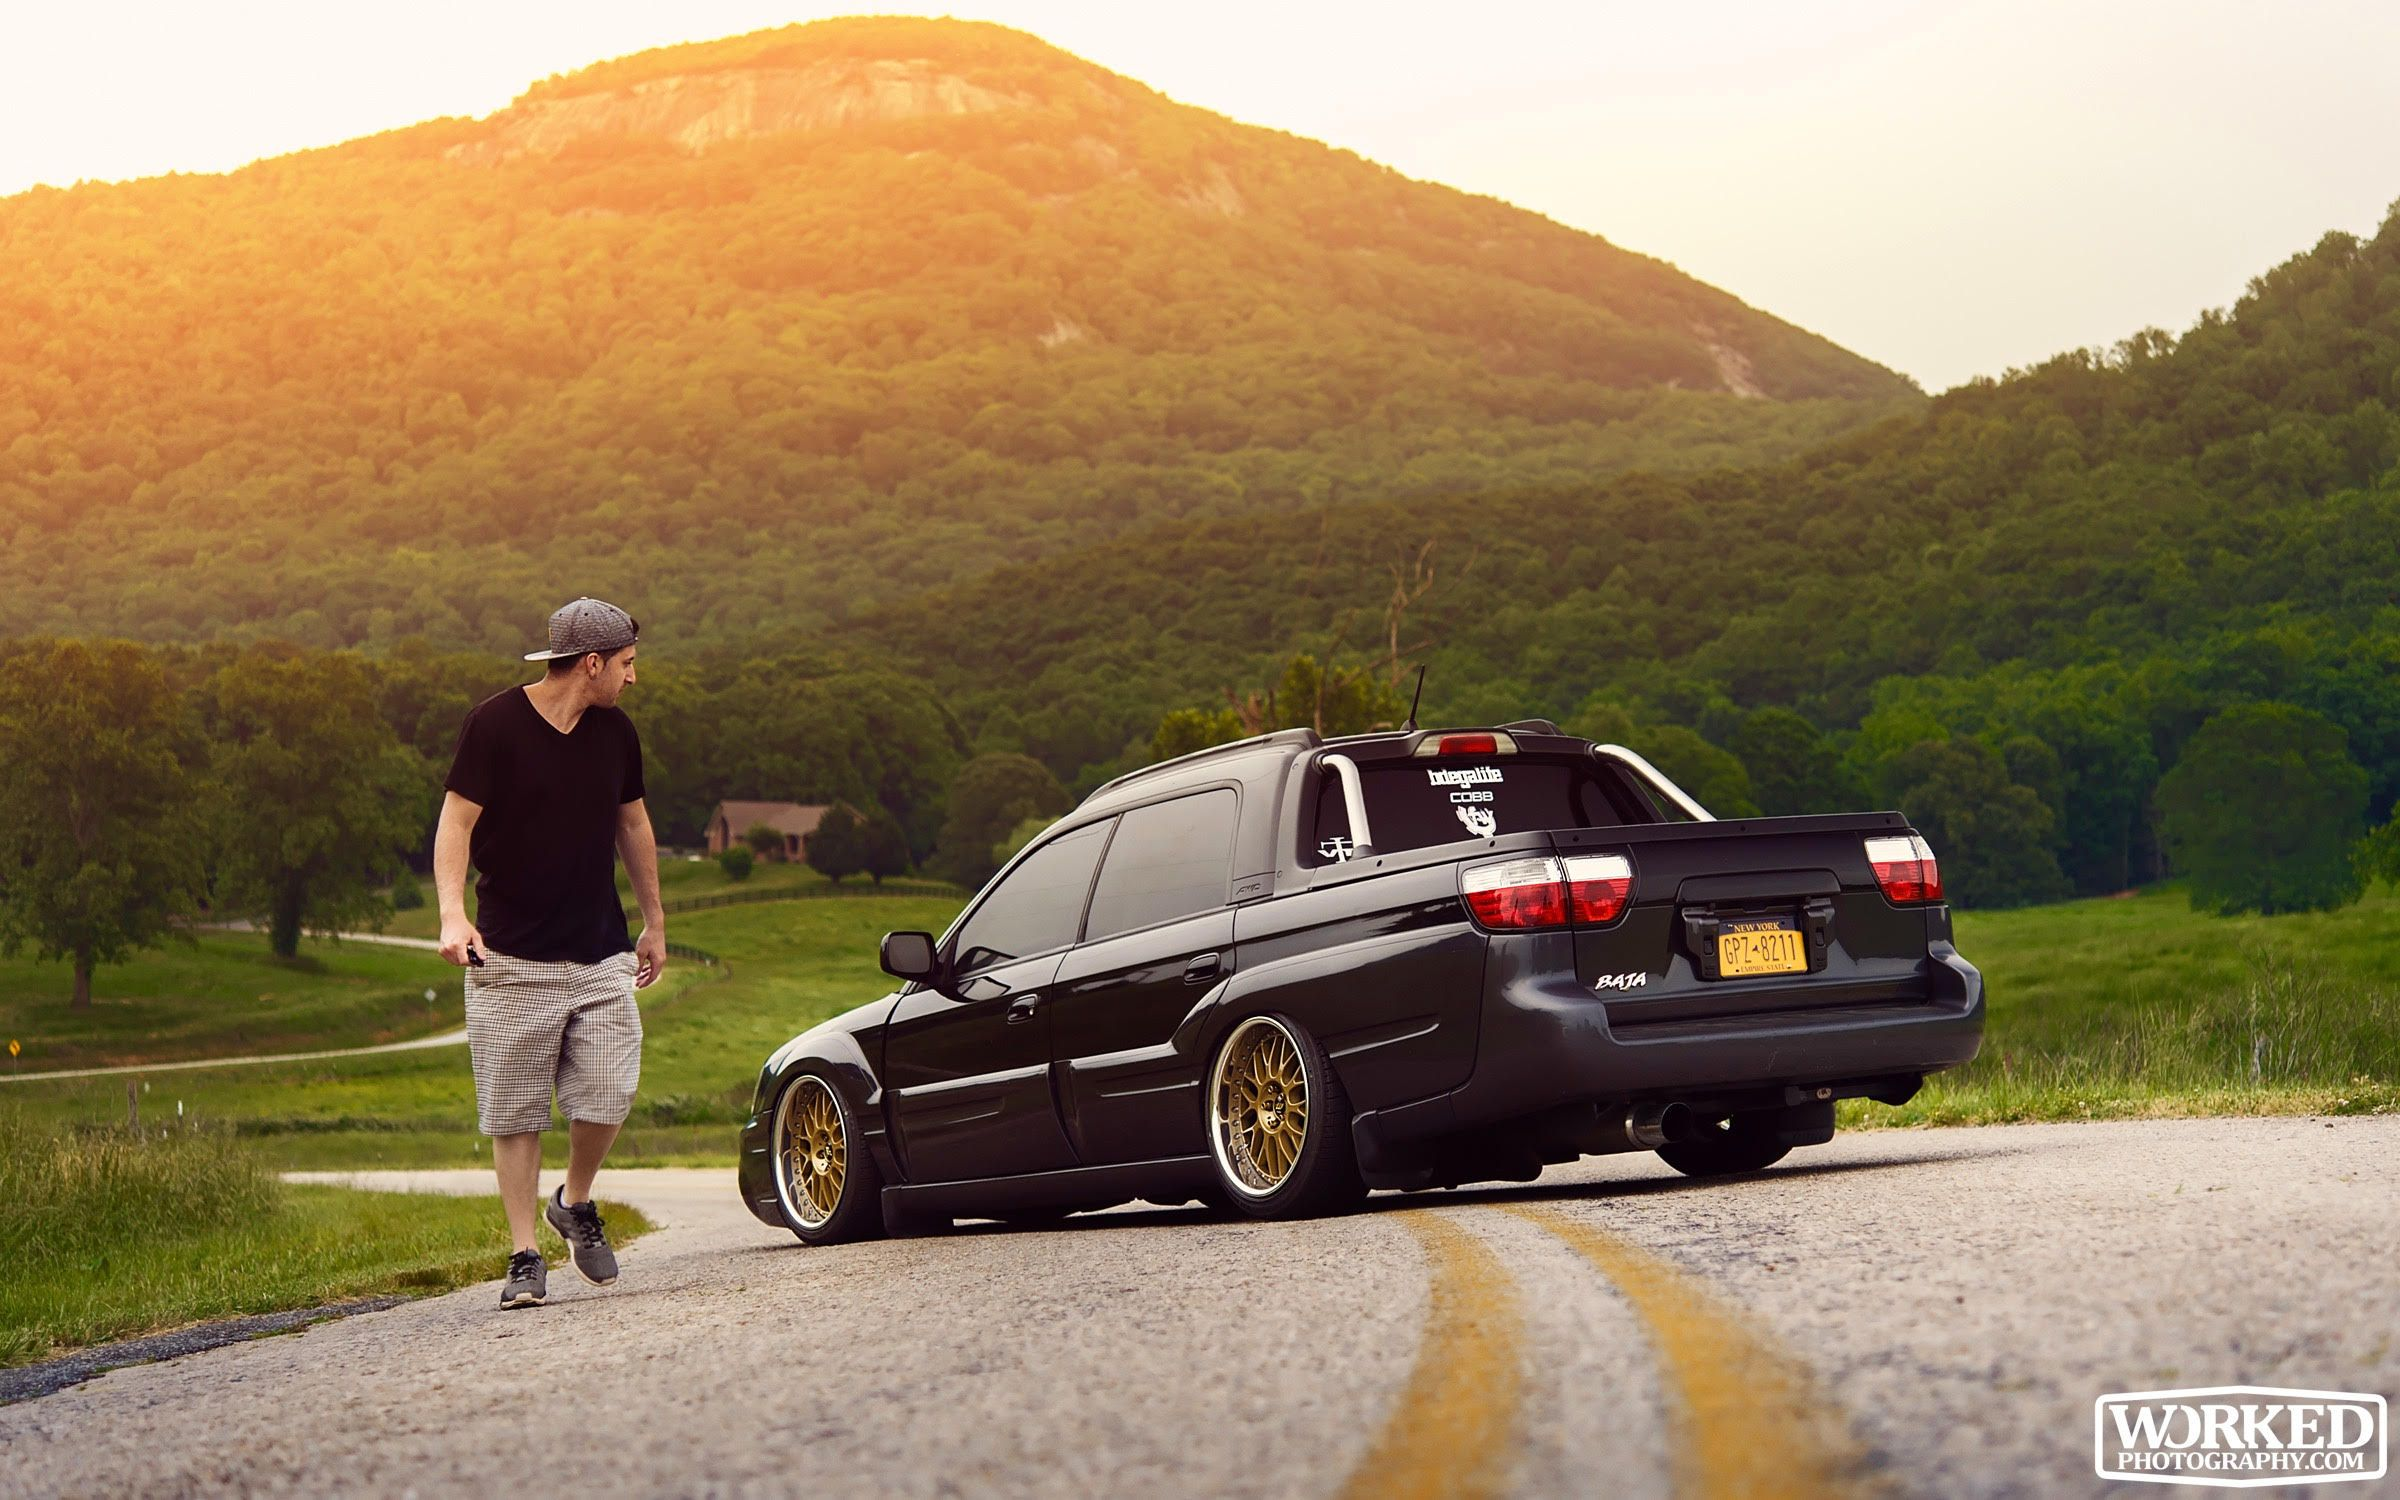 My Stanced And Bagged 2005 Subaru Baja Is Almost As Awesome As A 2016 Wrx Sti Subaru Baja Subaru Subaru Cars